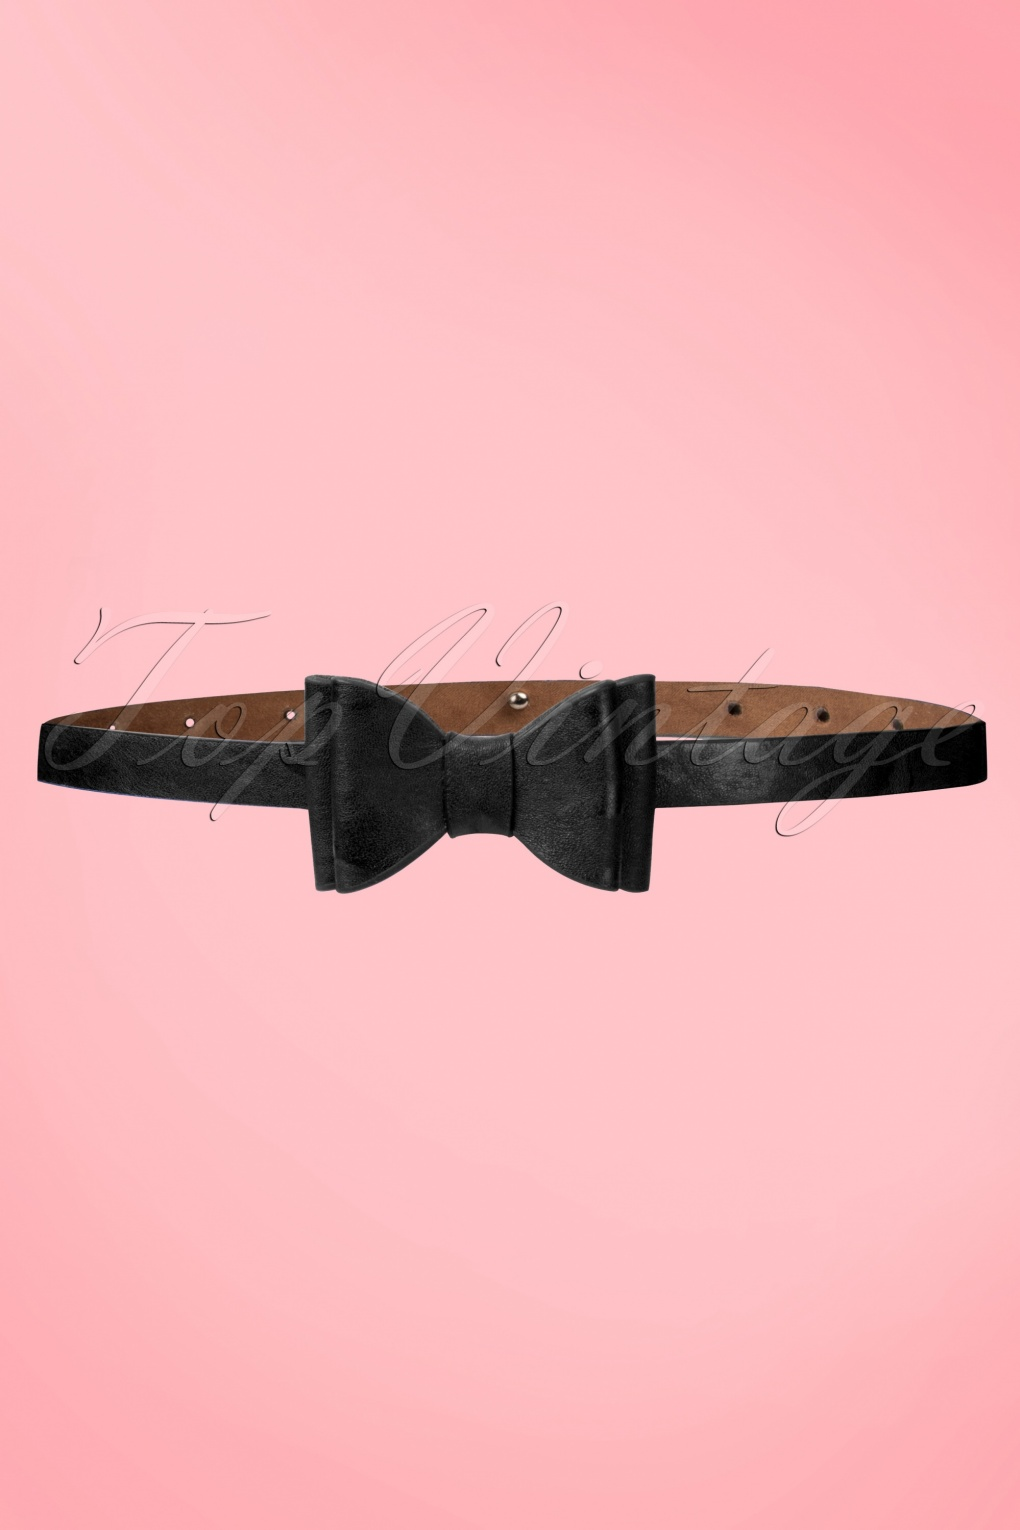 Vintage Wide Belts, Cinch Belts 40s, 50s Belts 50s Bow Belt in Black £13.32 AT vintagedancer.com